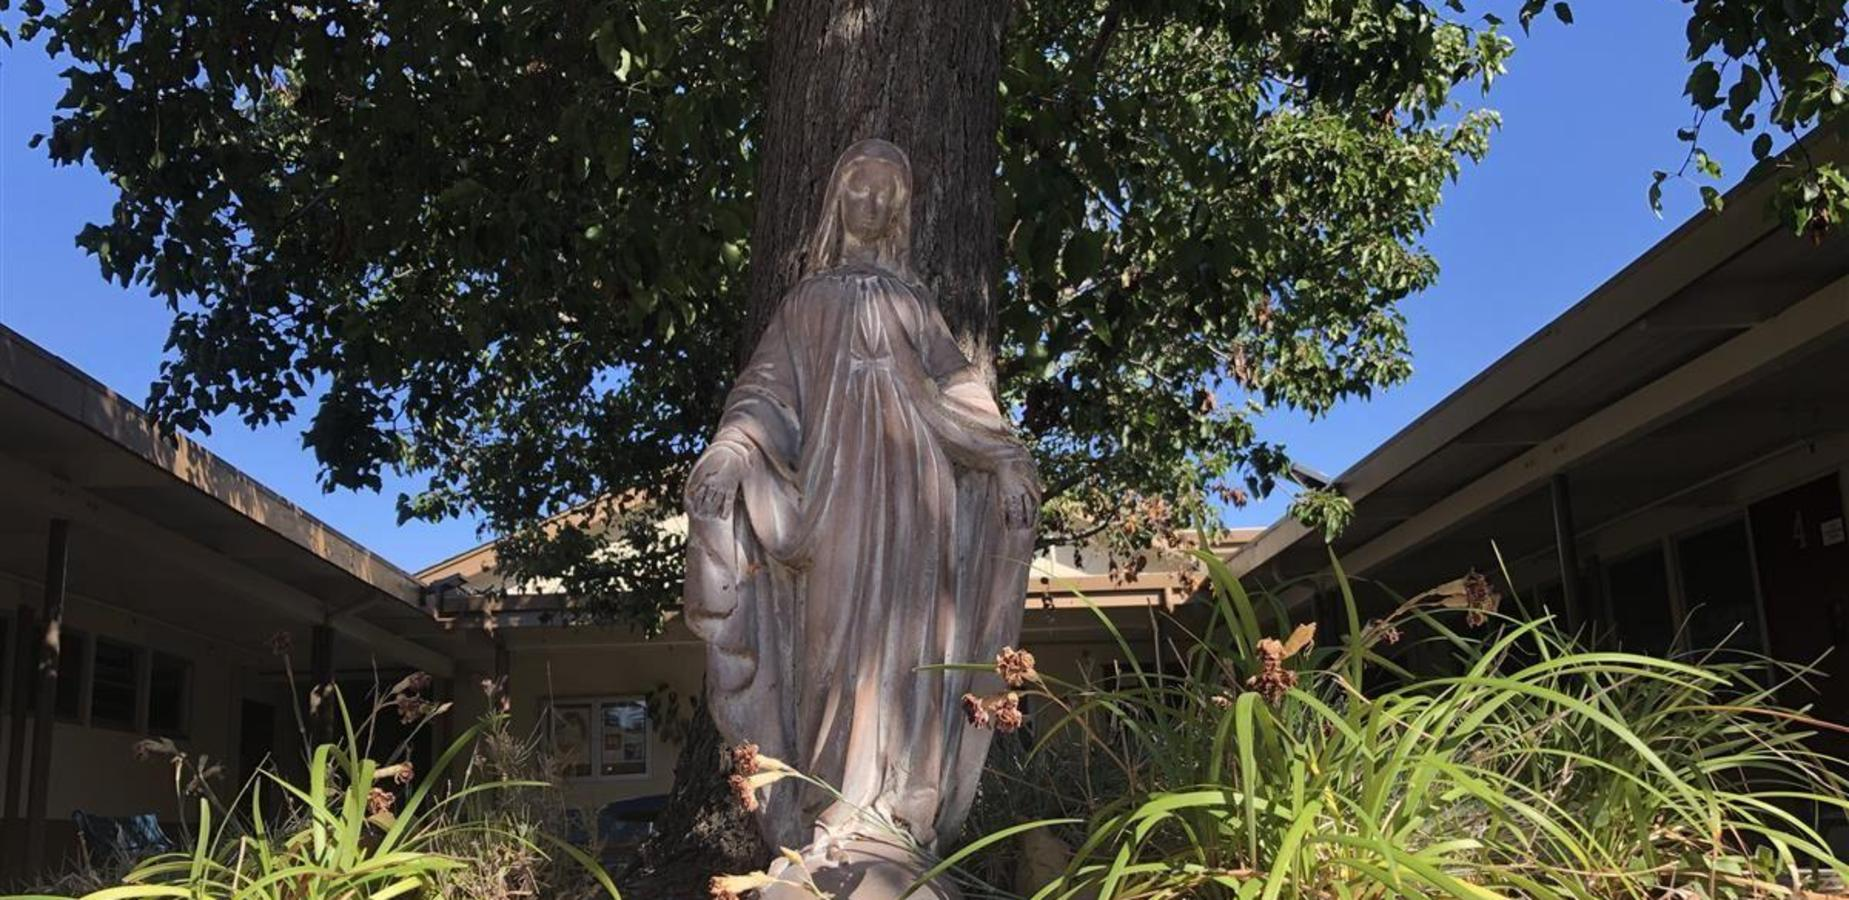 Mother Mary statue in our Courtyard.